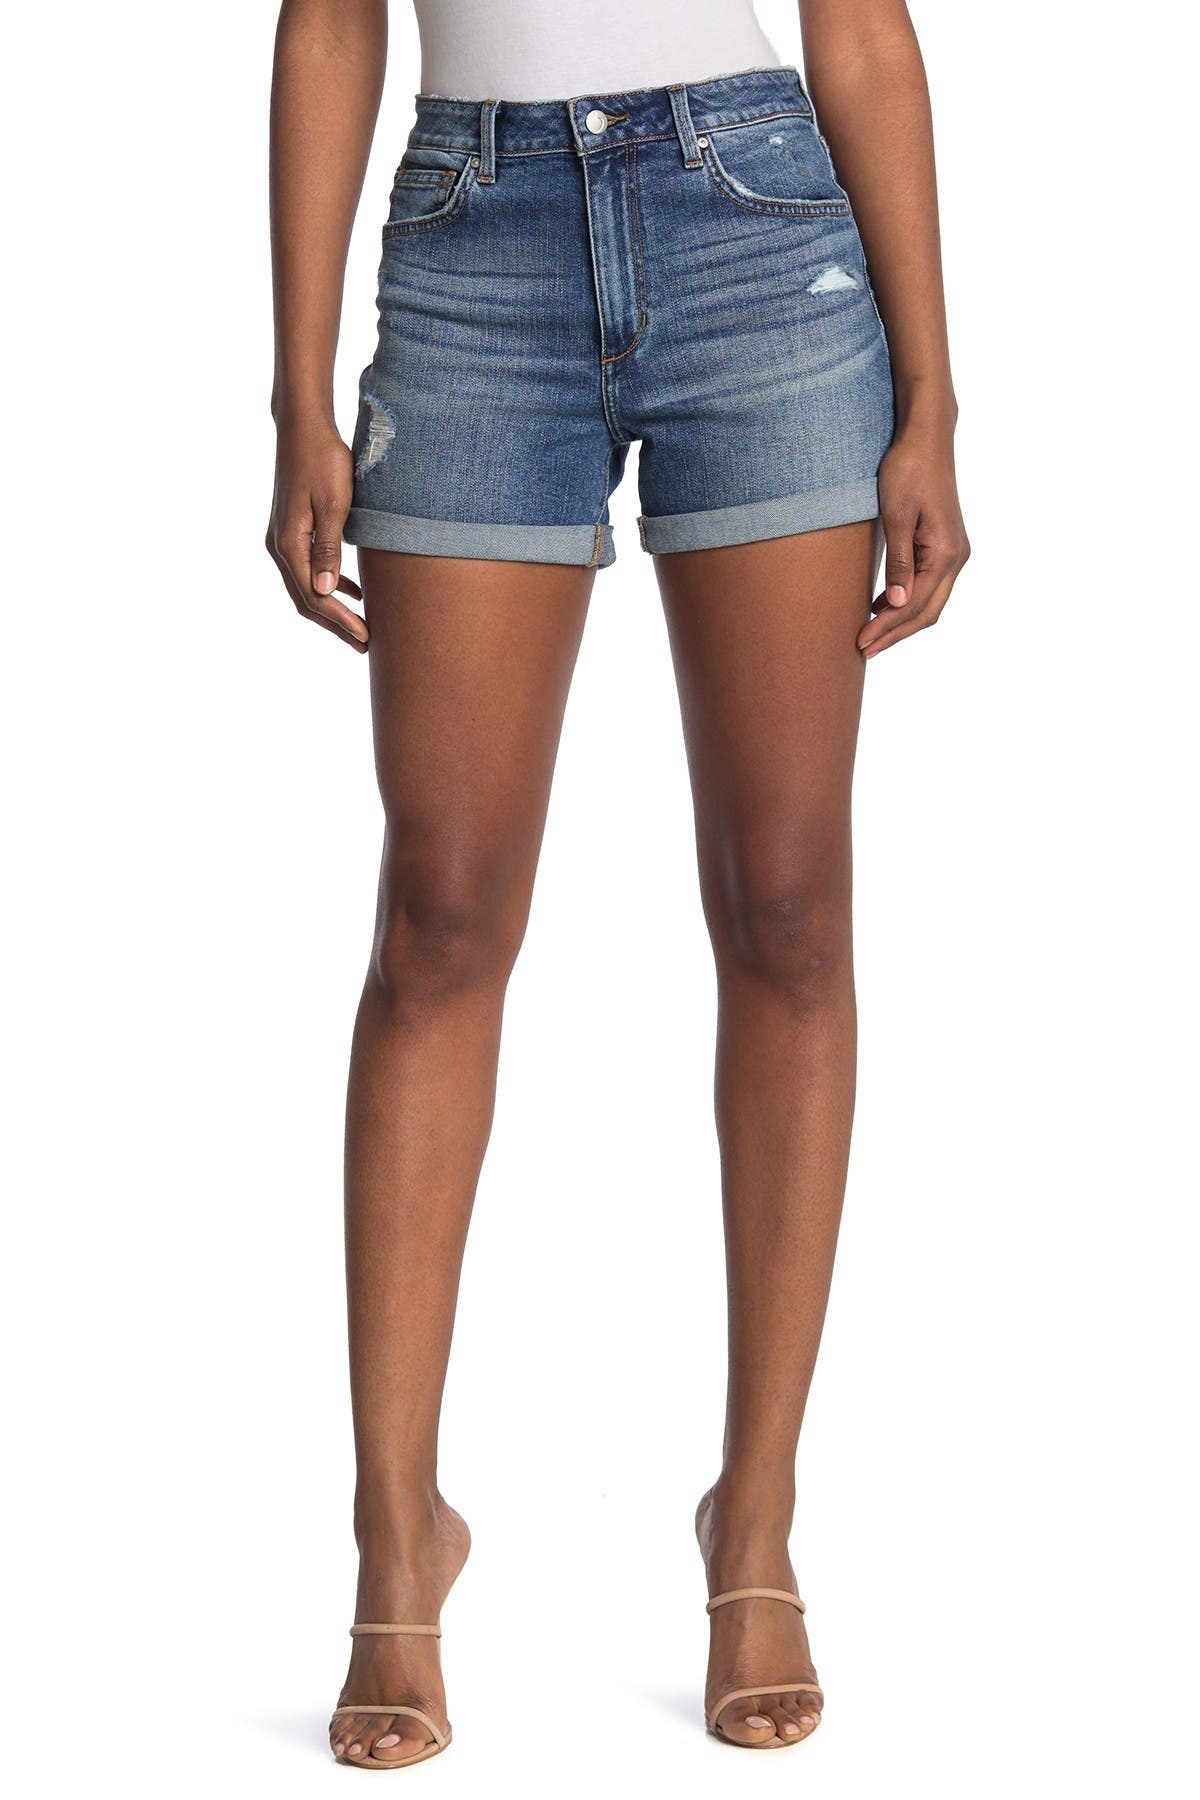 Image of Joe's Jeans High Rise Distressed Shorts